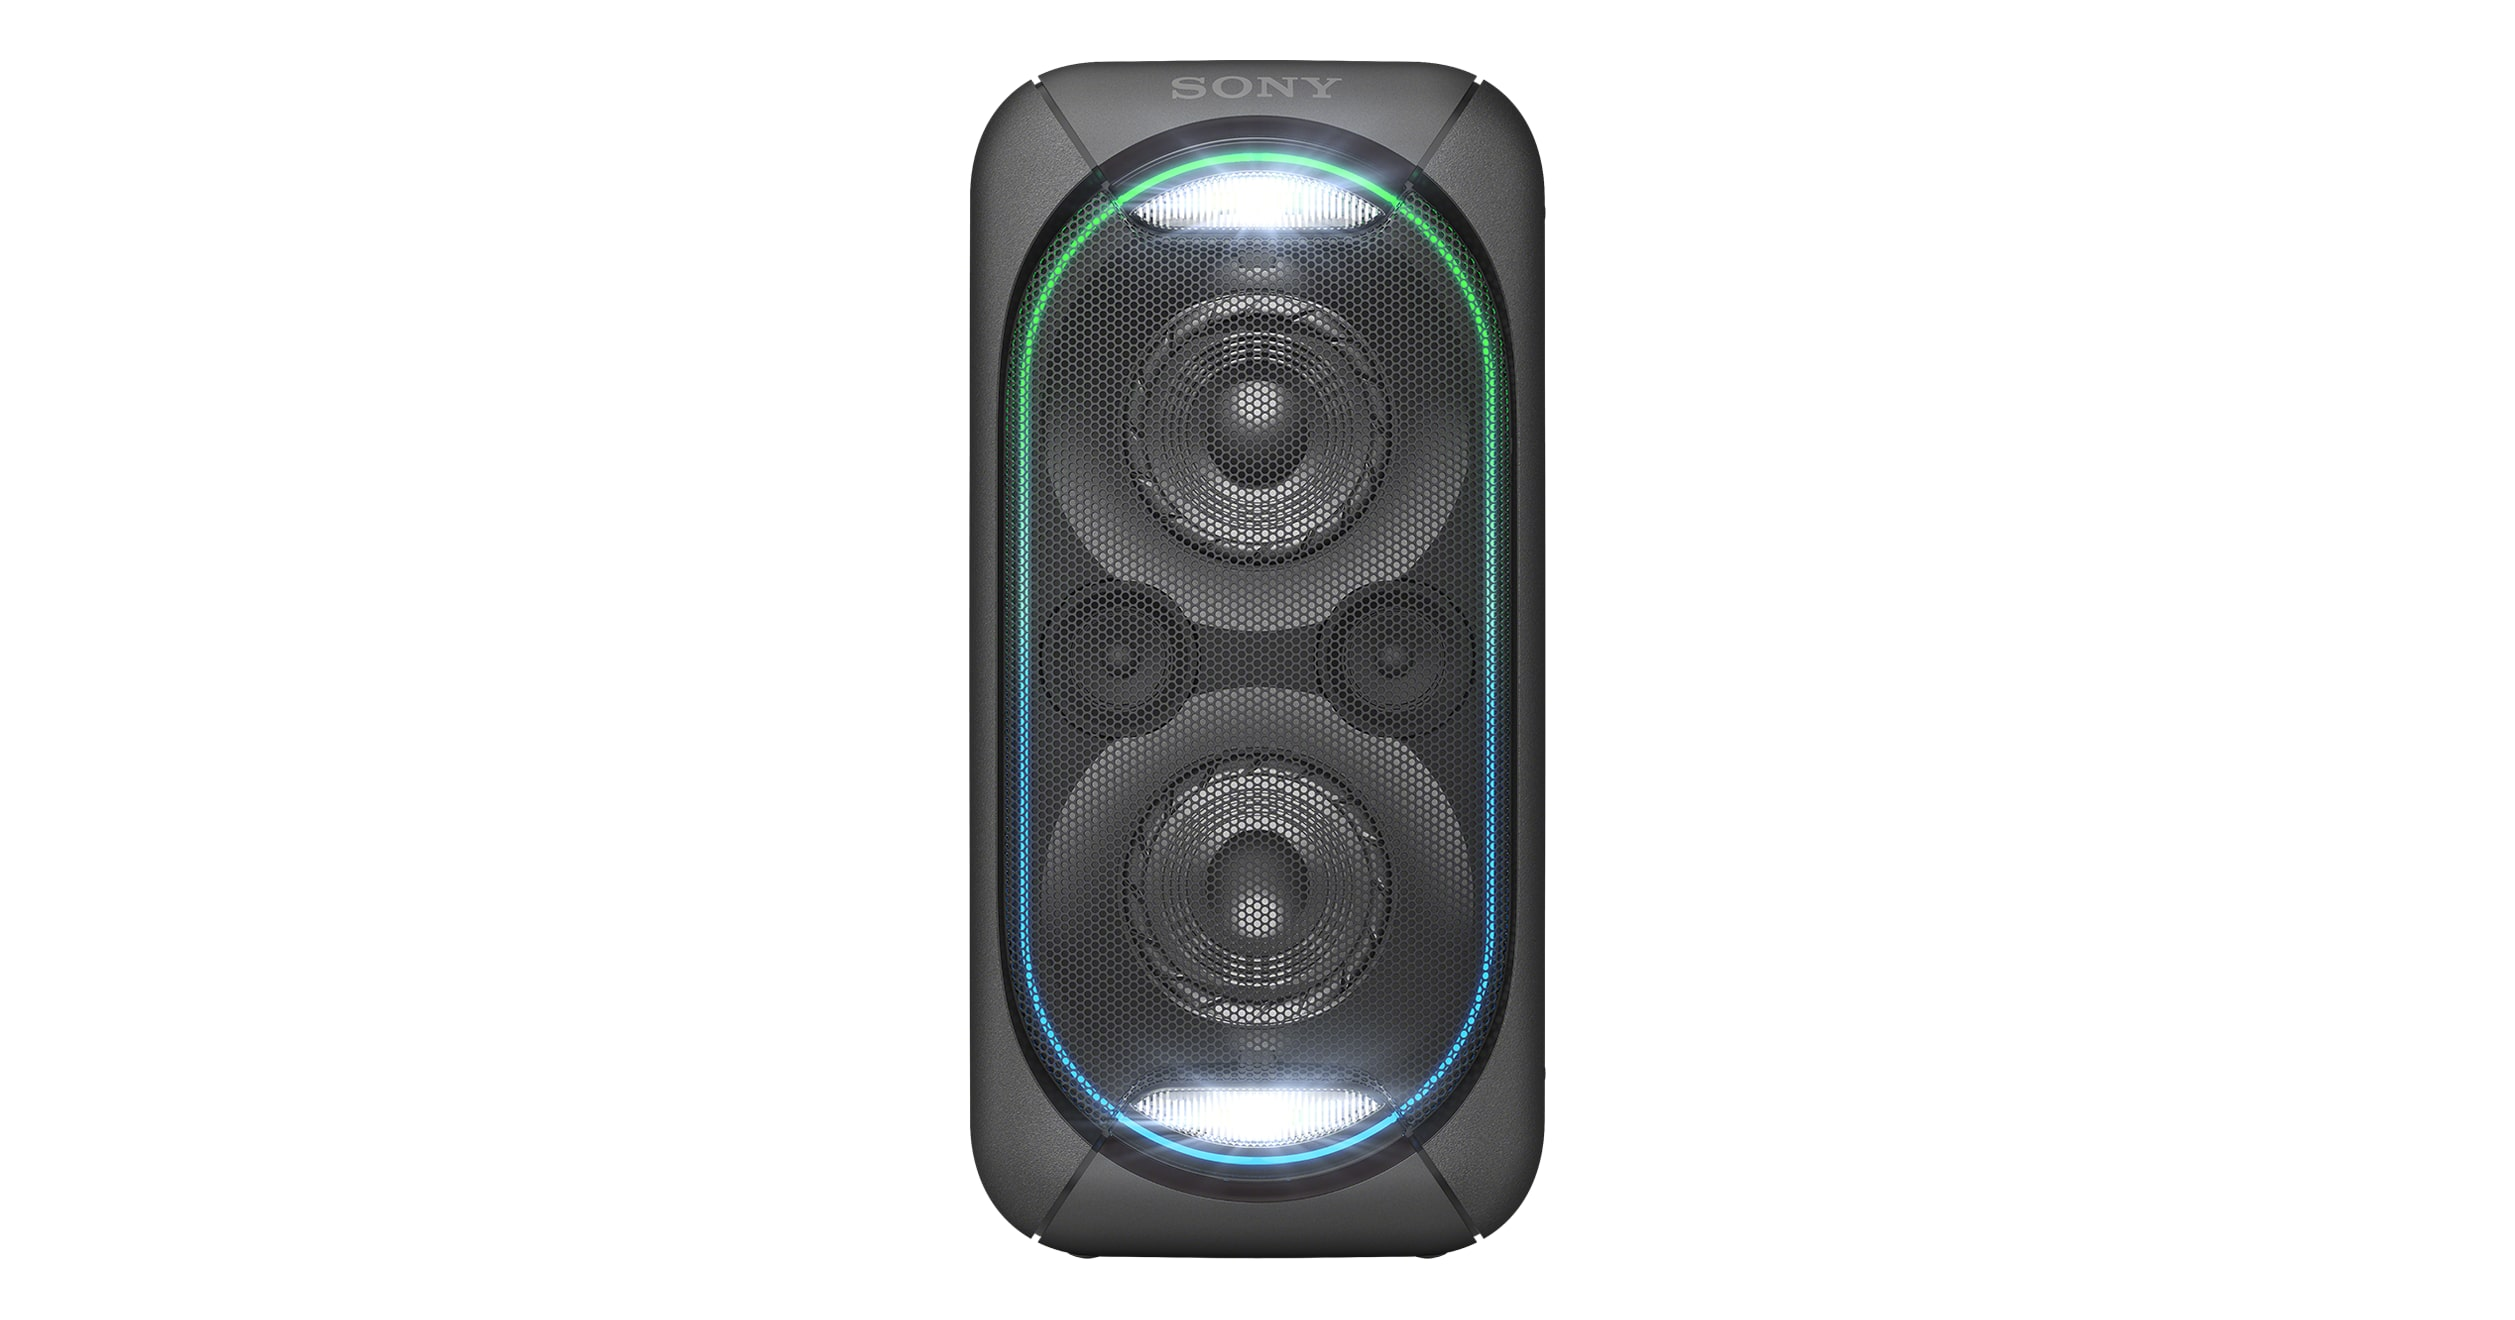 Xb60 Extra Bass High Power Audio System With Built In Battery Gtk Download Image Wiring A Guitar Speaker Cabinet Pc Android Iphone And Sony Uk